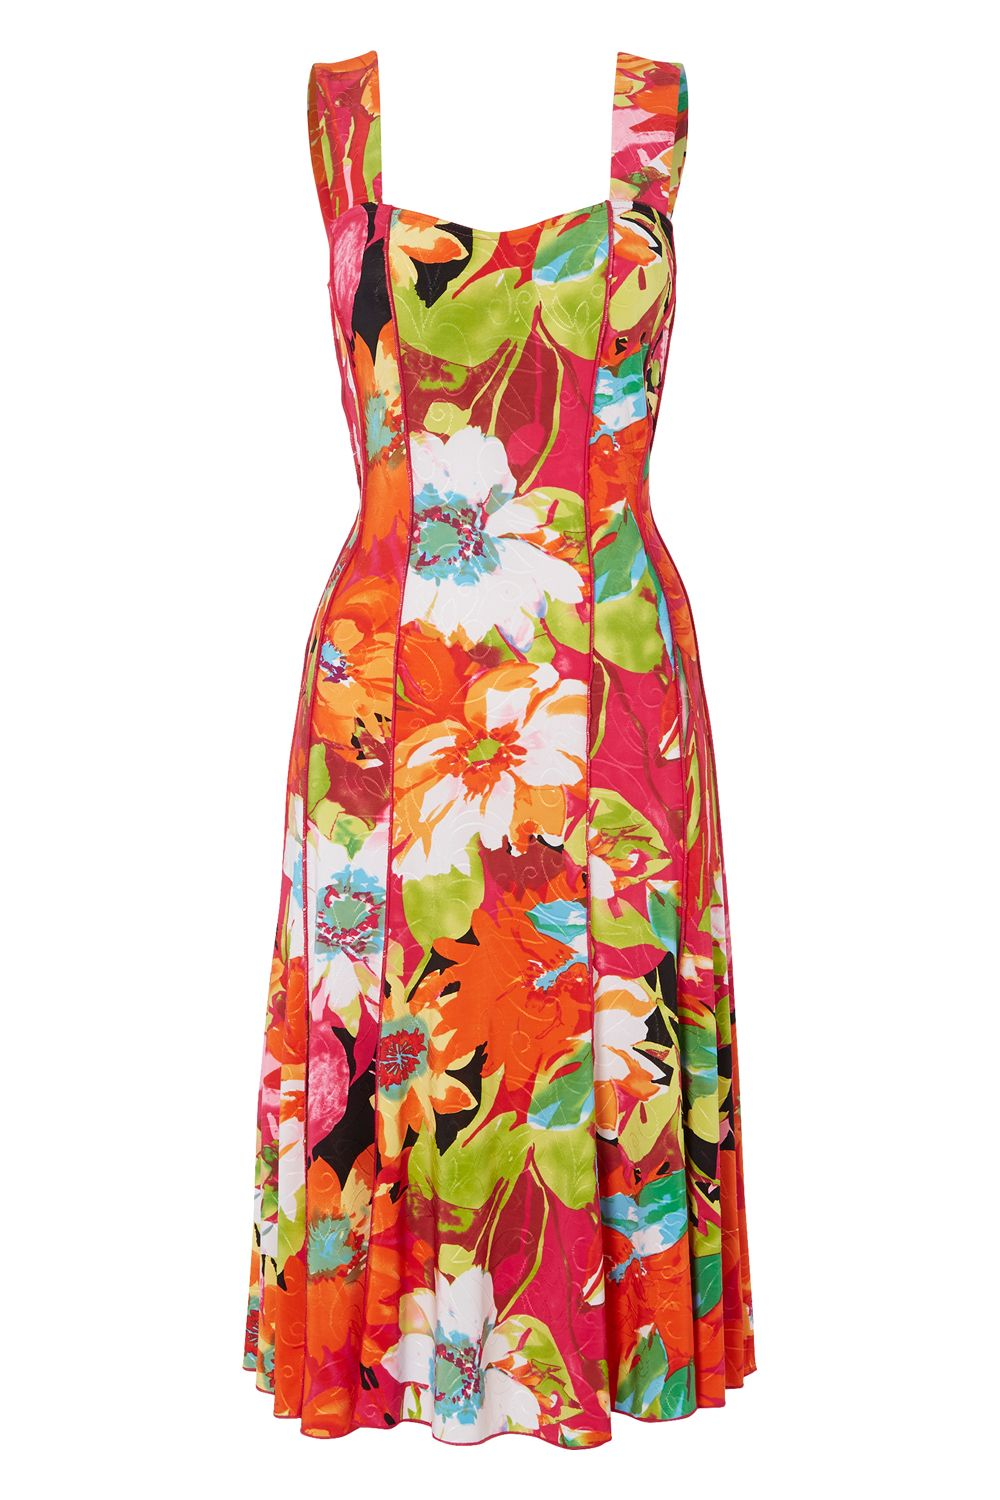 Roman Originals Floral Print Multi Panel Dress, Multi-Coloured